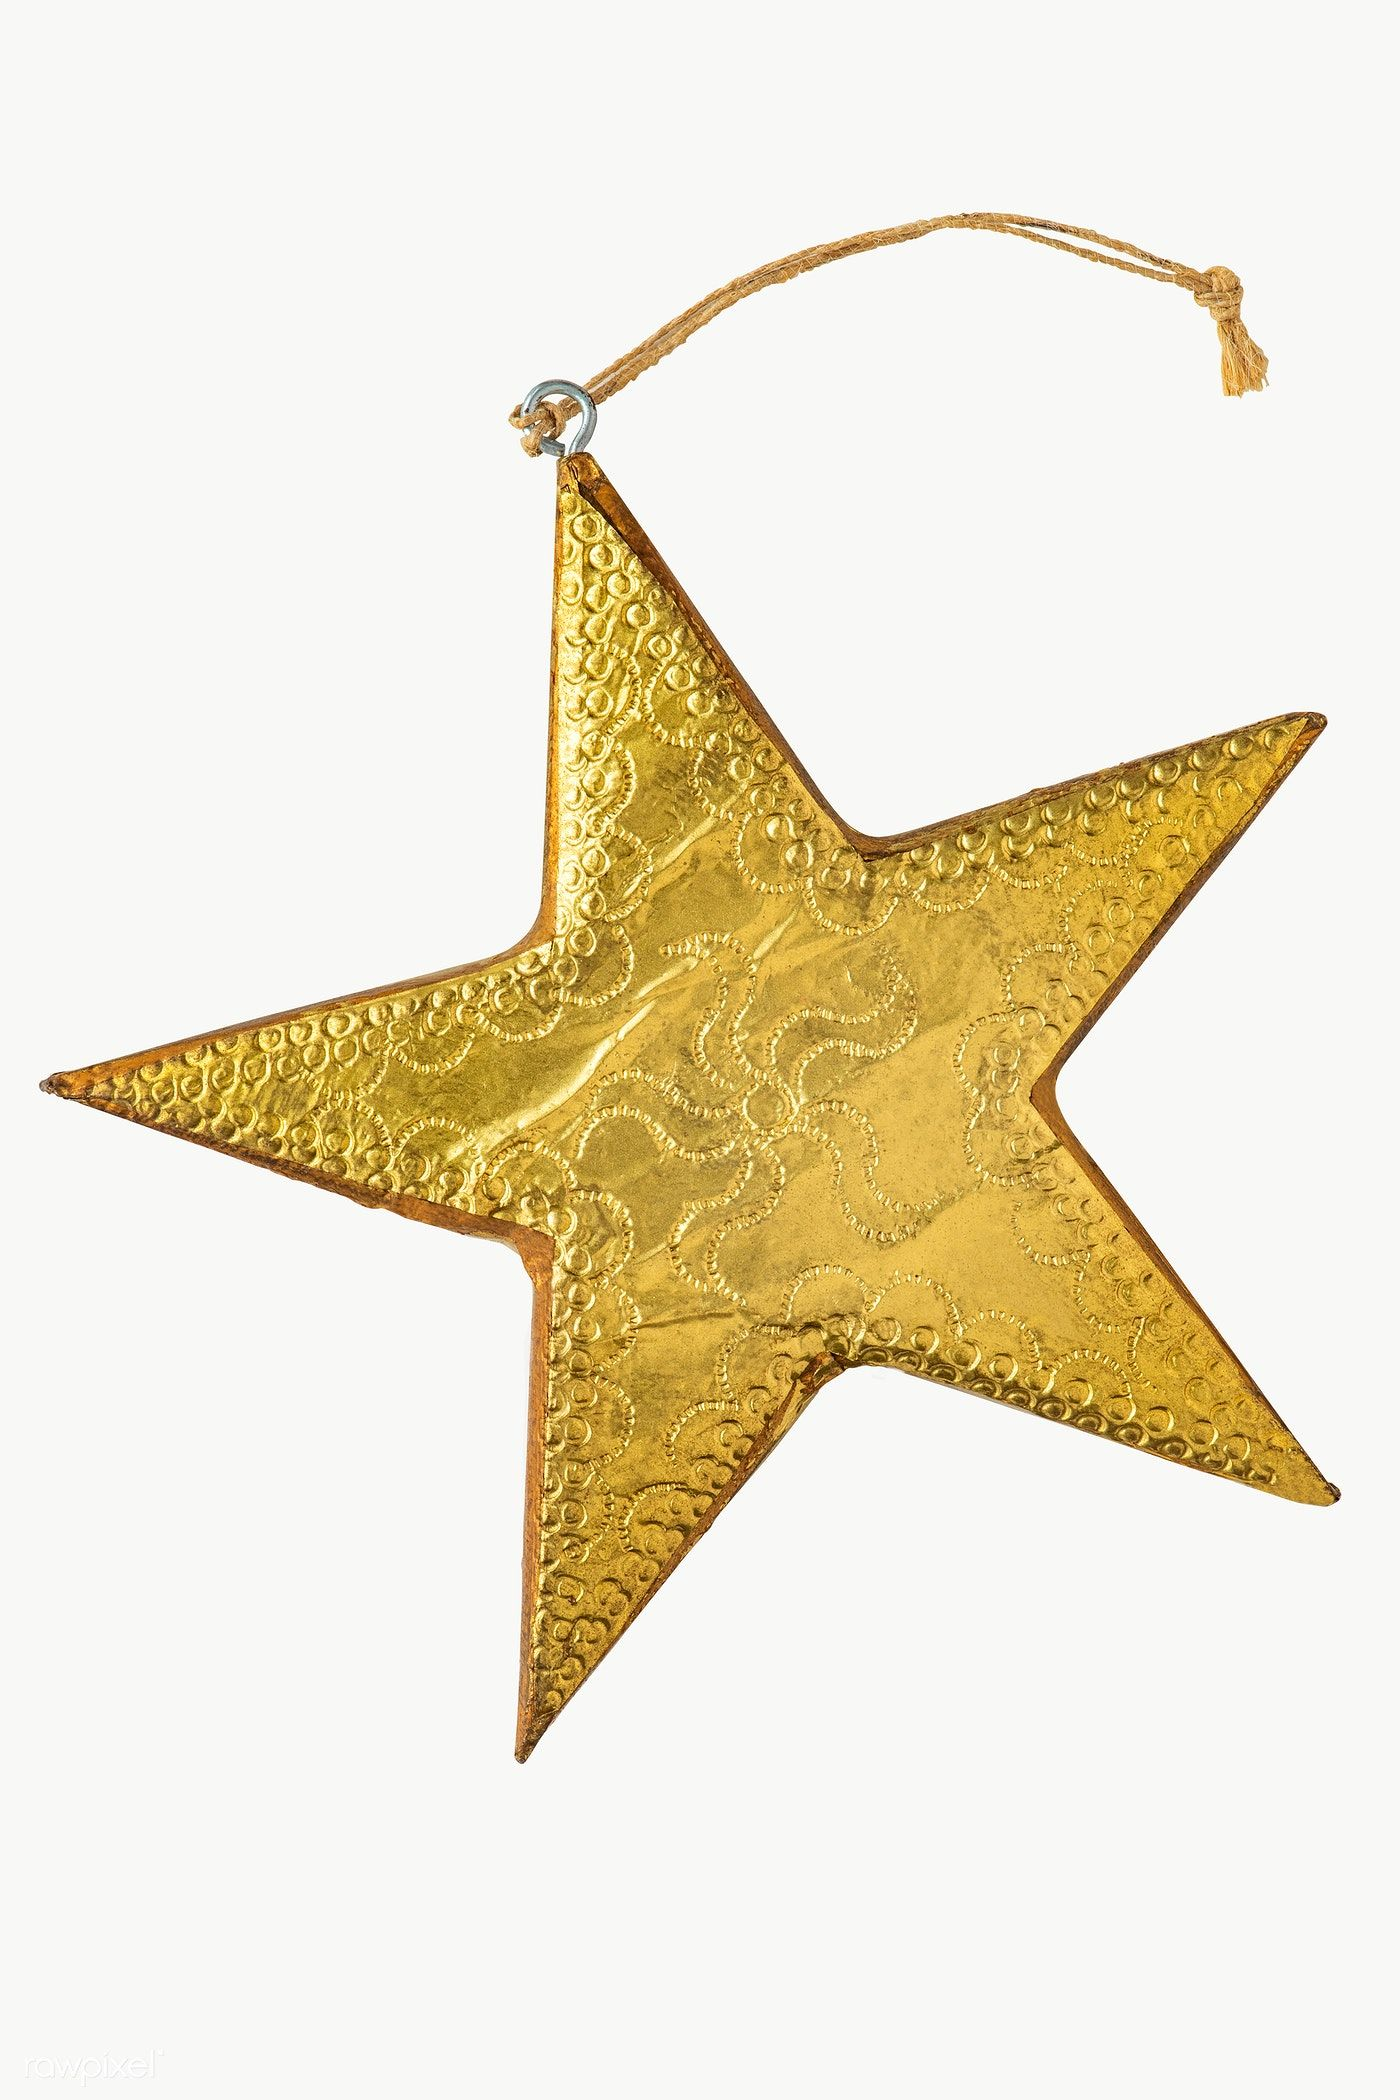 Download Premium Png Of A Gold Star Christmas Ornament On Transparent